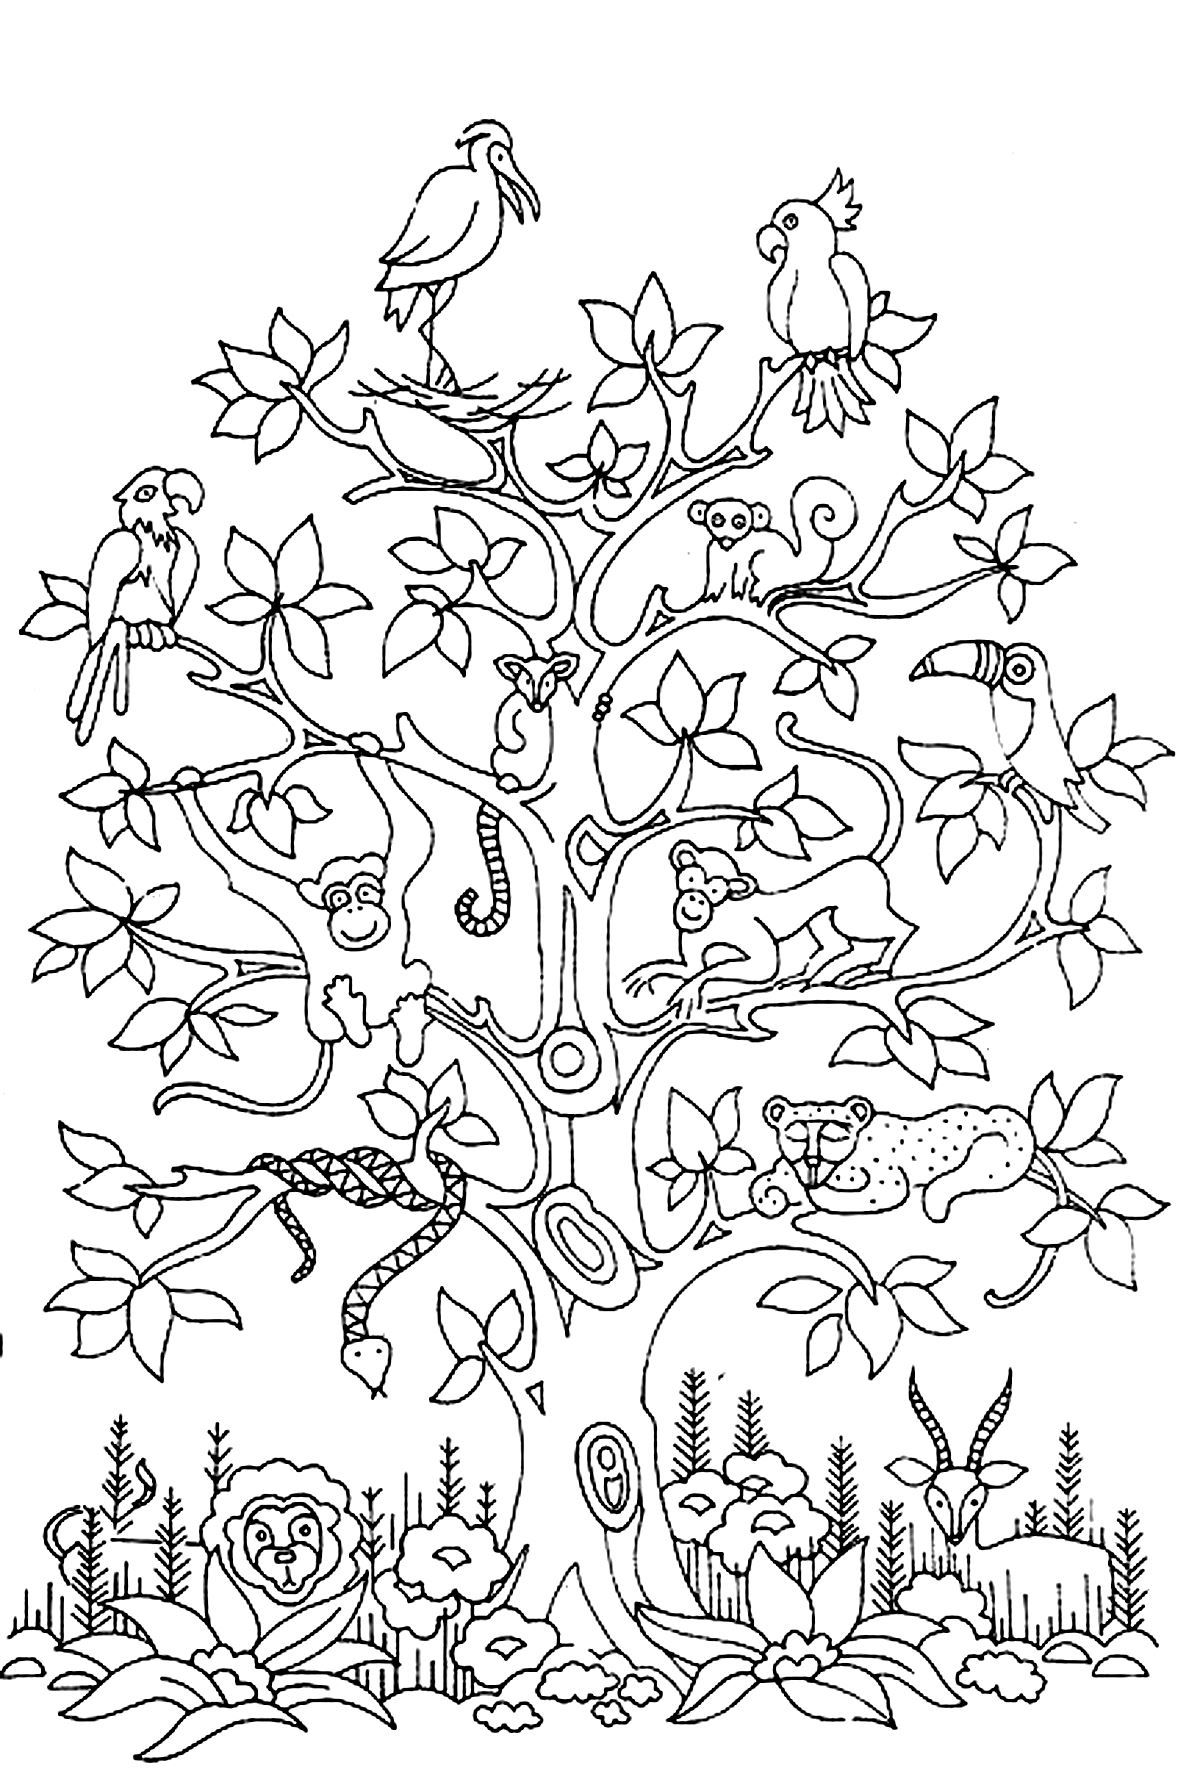 free coloring page coloring difficult tree bird butterflies